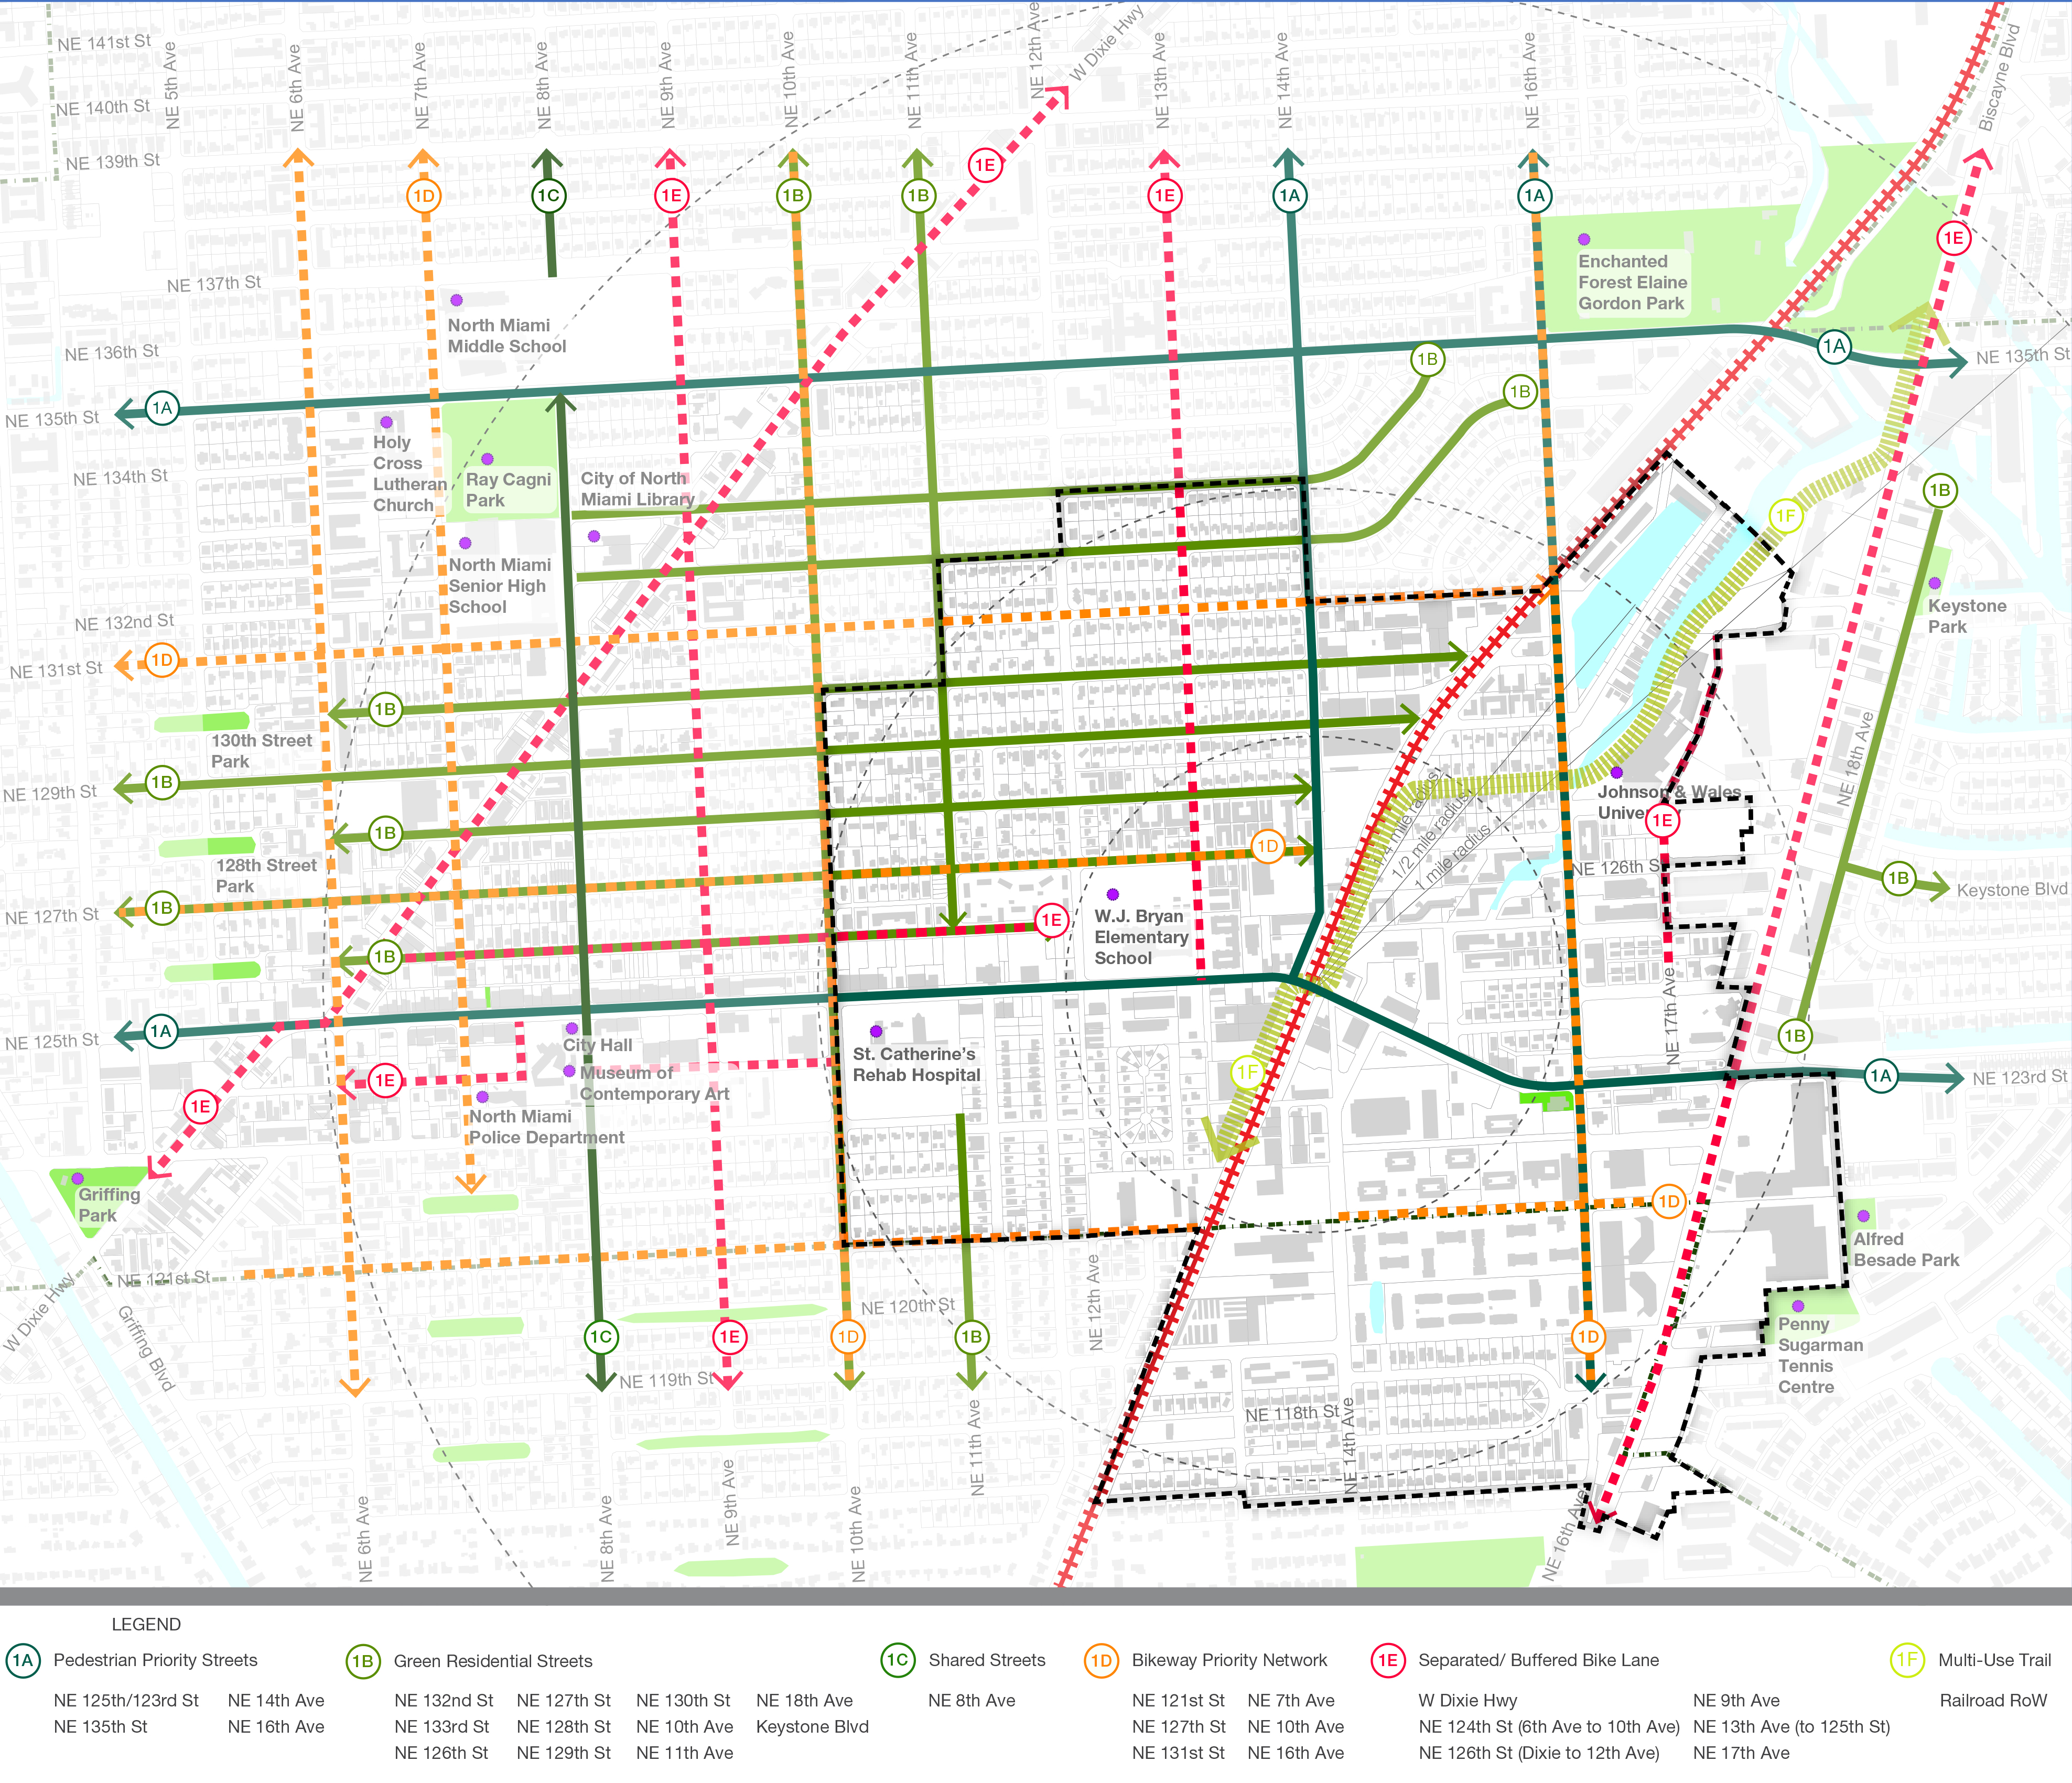 concept plan north miami mobility hubtypes to create a high quality, dedicated and safer network infrastructure connecting neighborhood destinations, transit hubs, and residential areas